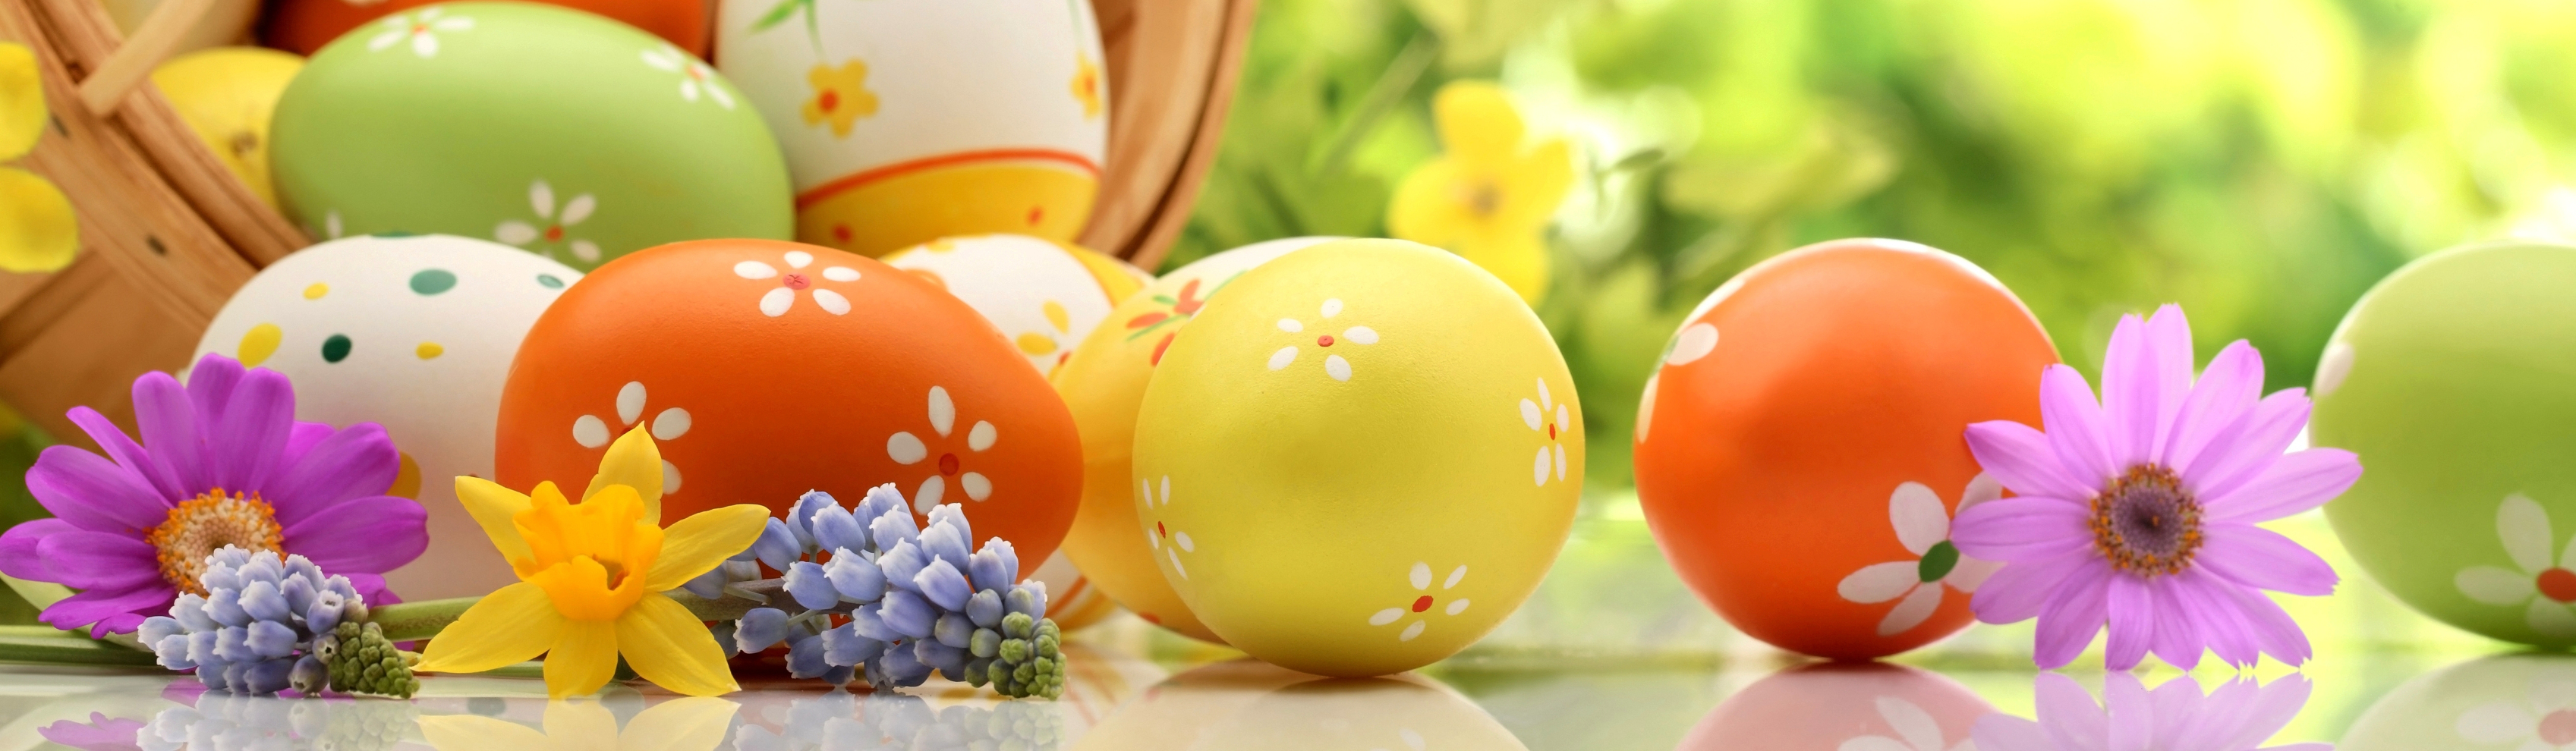 5 Egg-Citing Easter Bank Holiday Plans in London